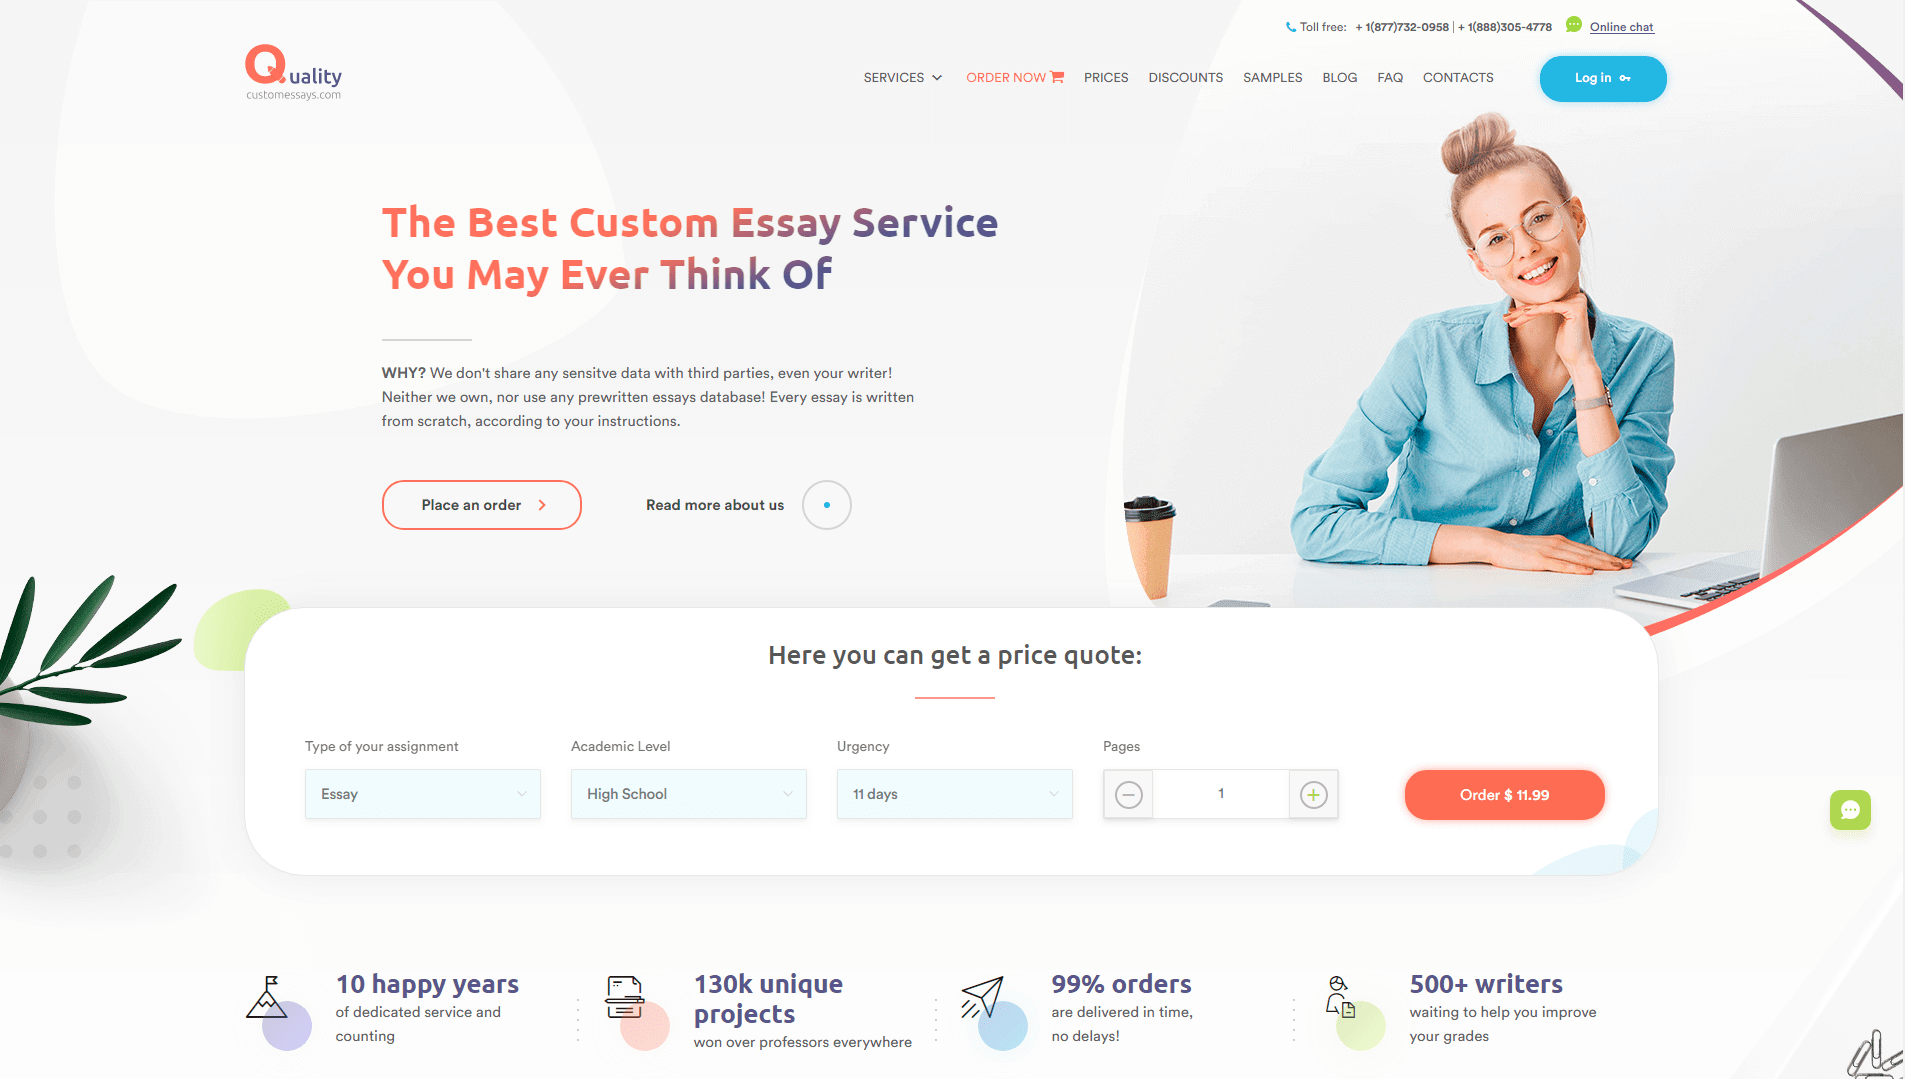 qualitycustomessays.com Review